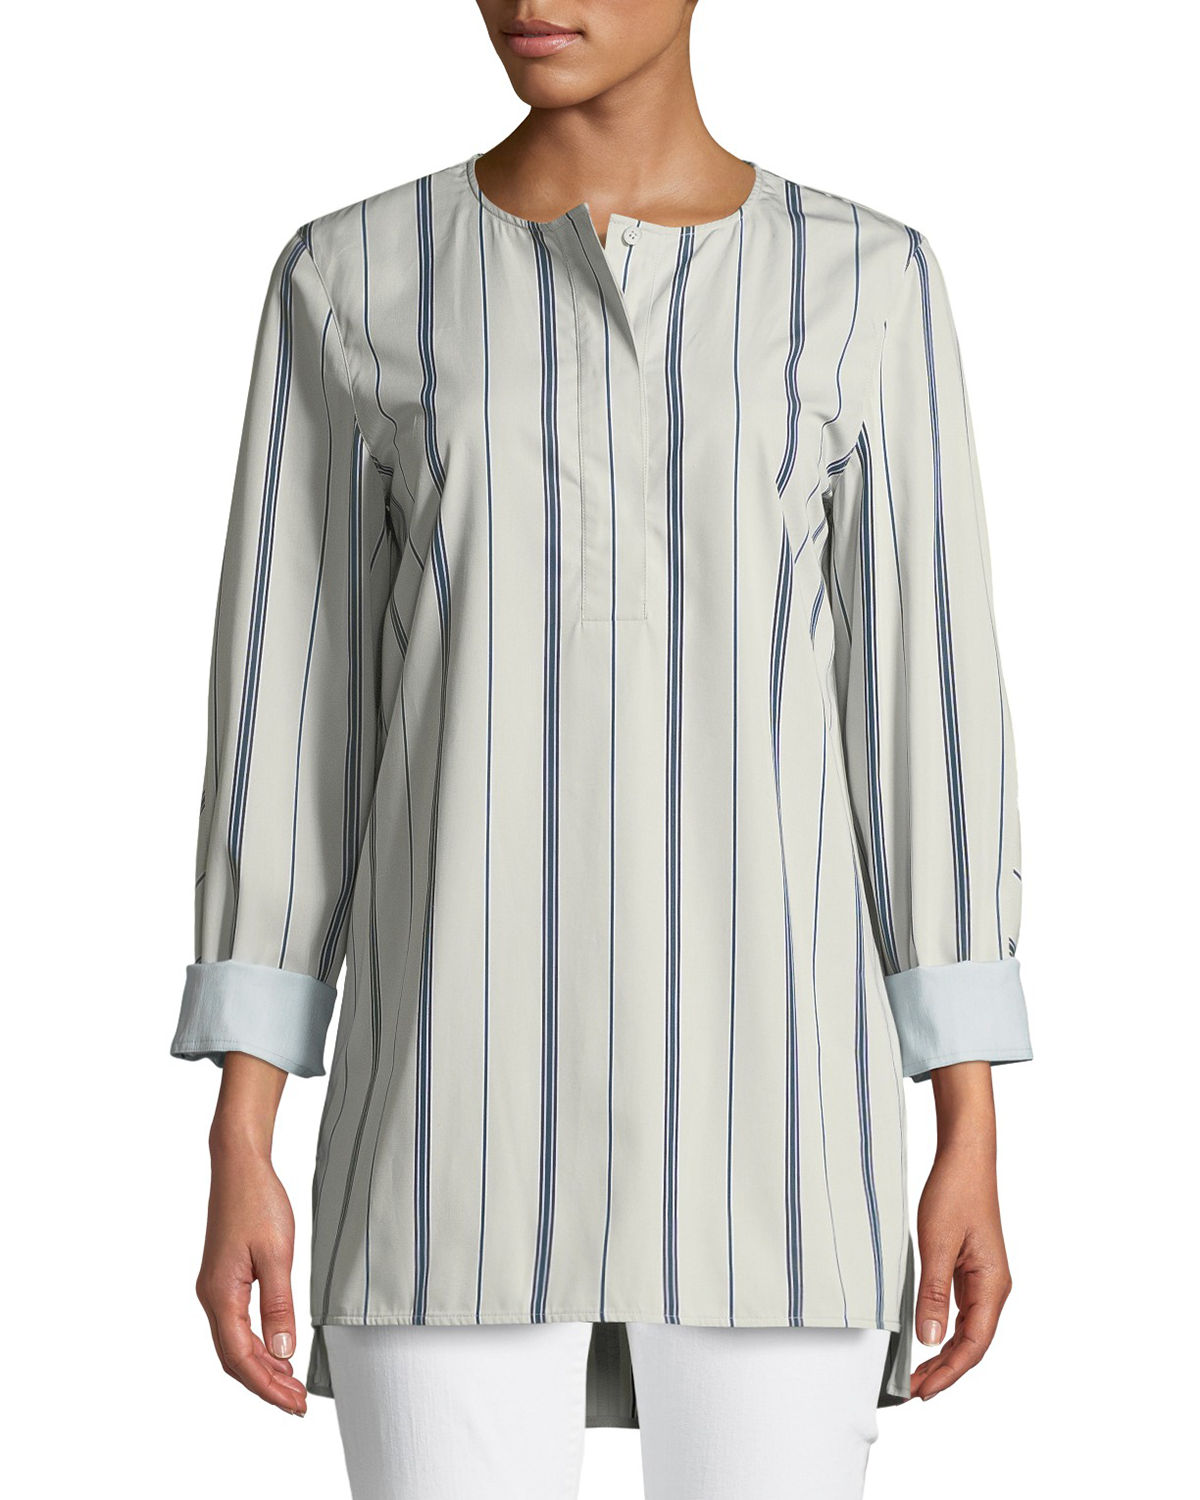 Lafayette 148 Tops TILLY SONORAN STRIPED BLOUSE